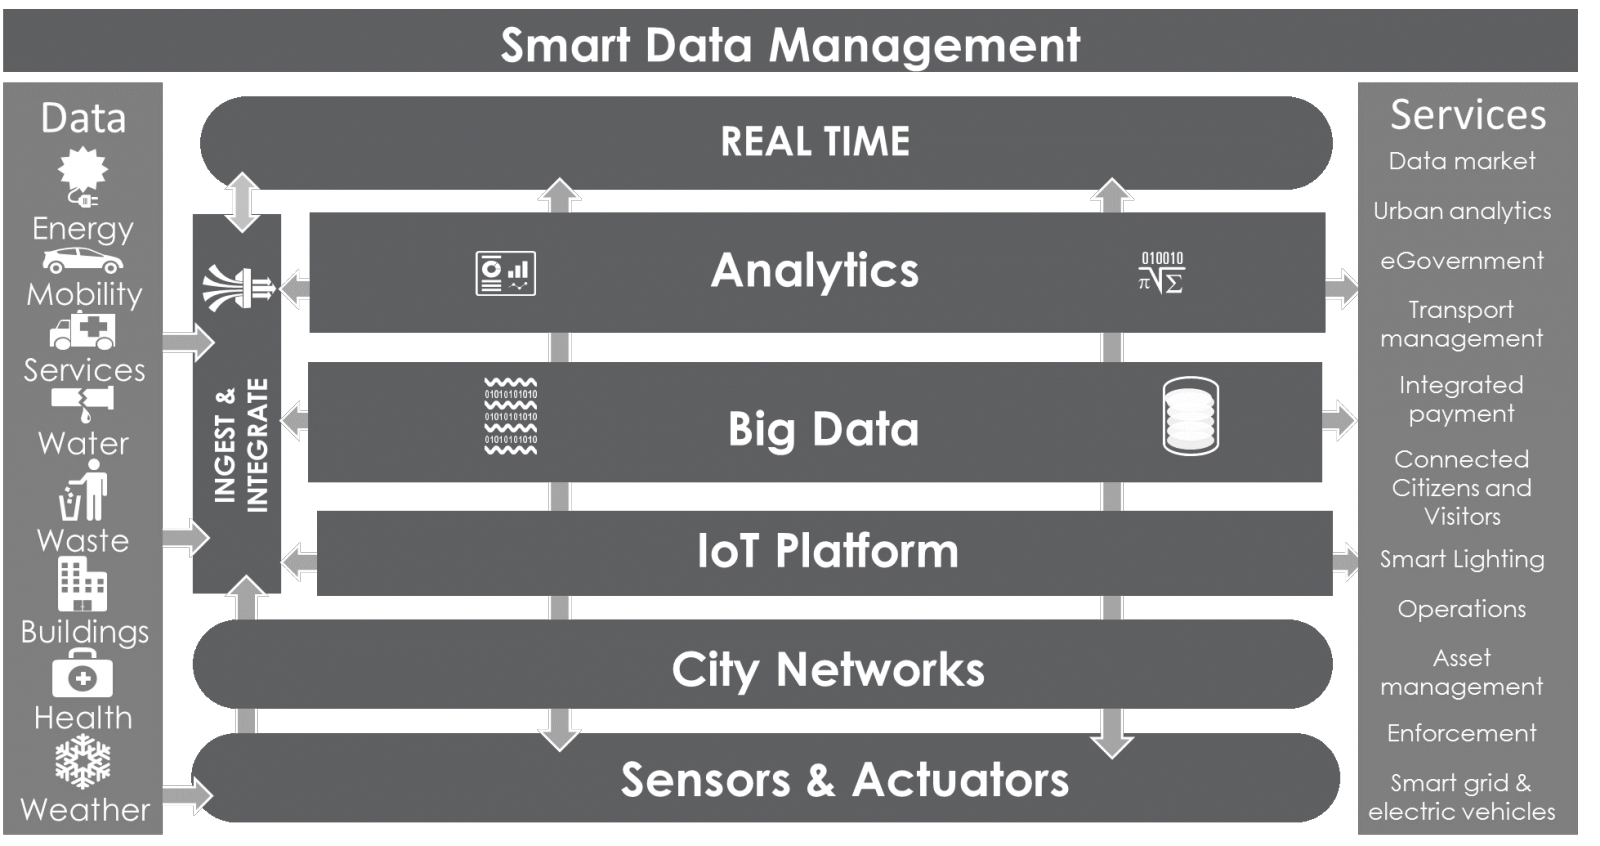 Smart Data Management for Smart Cities